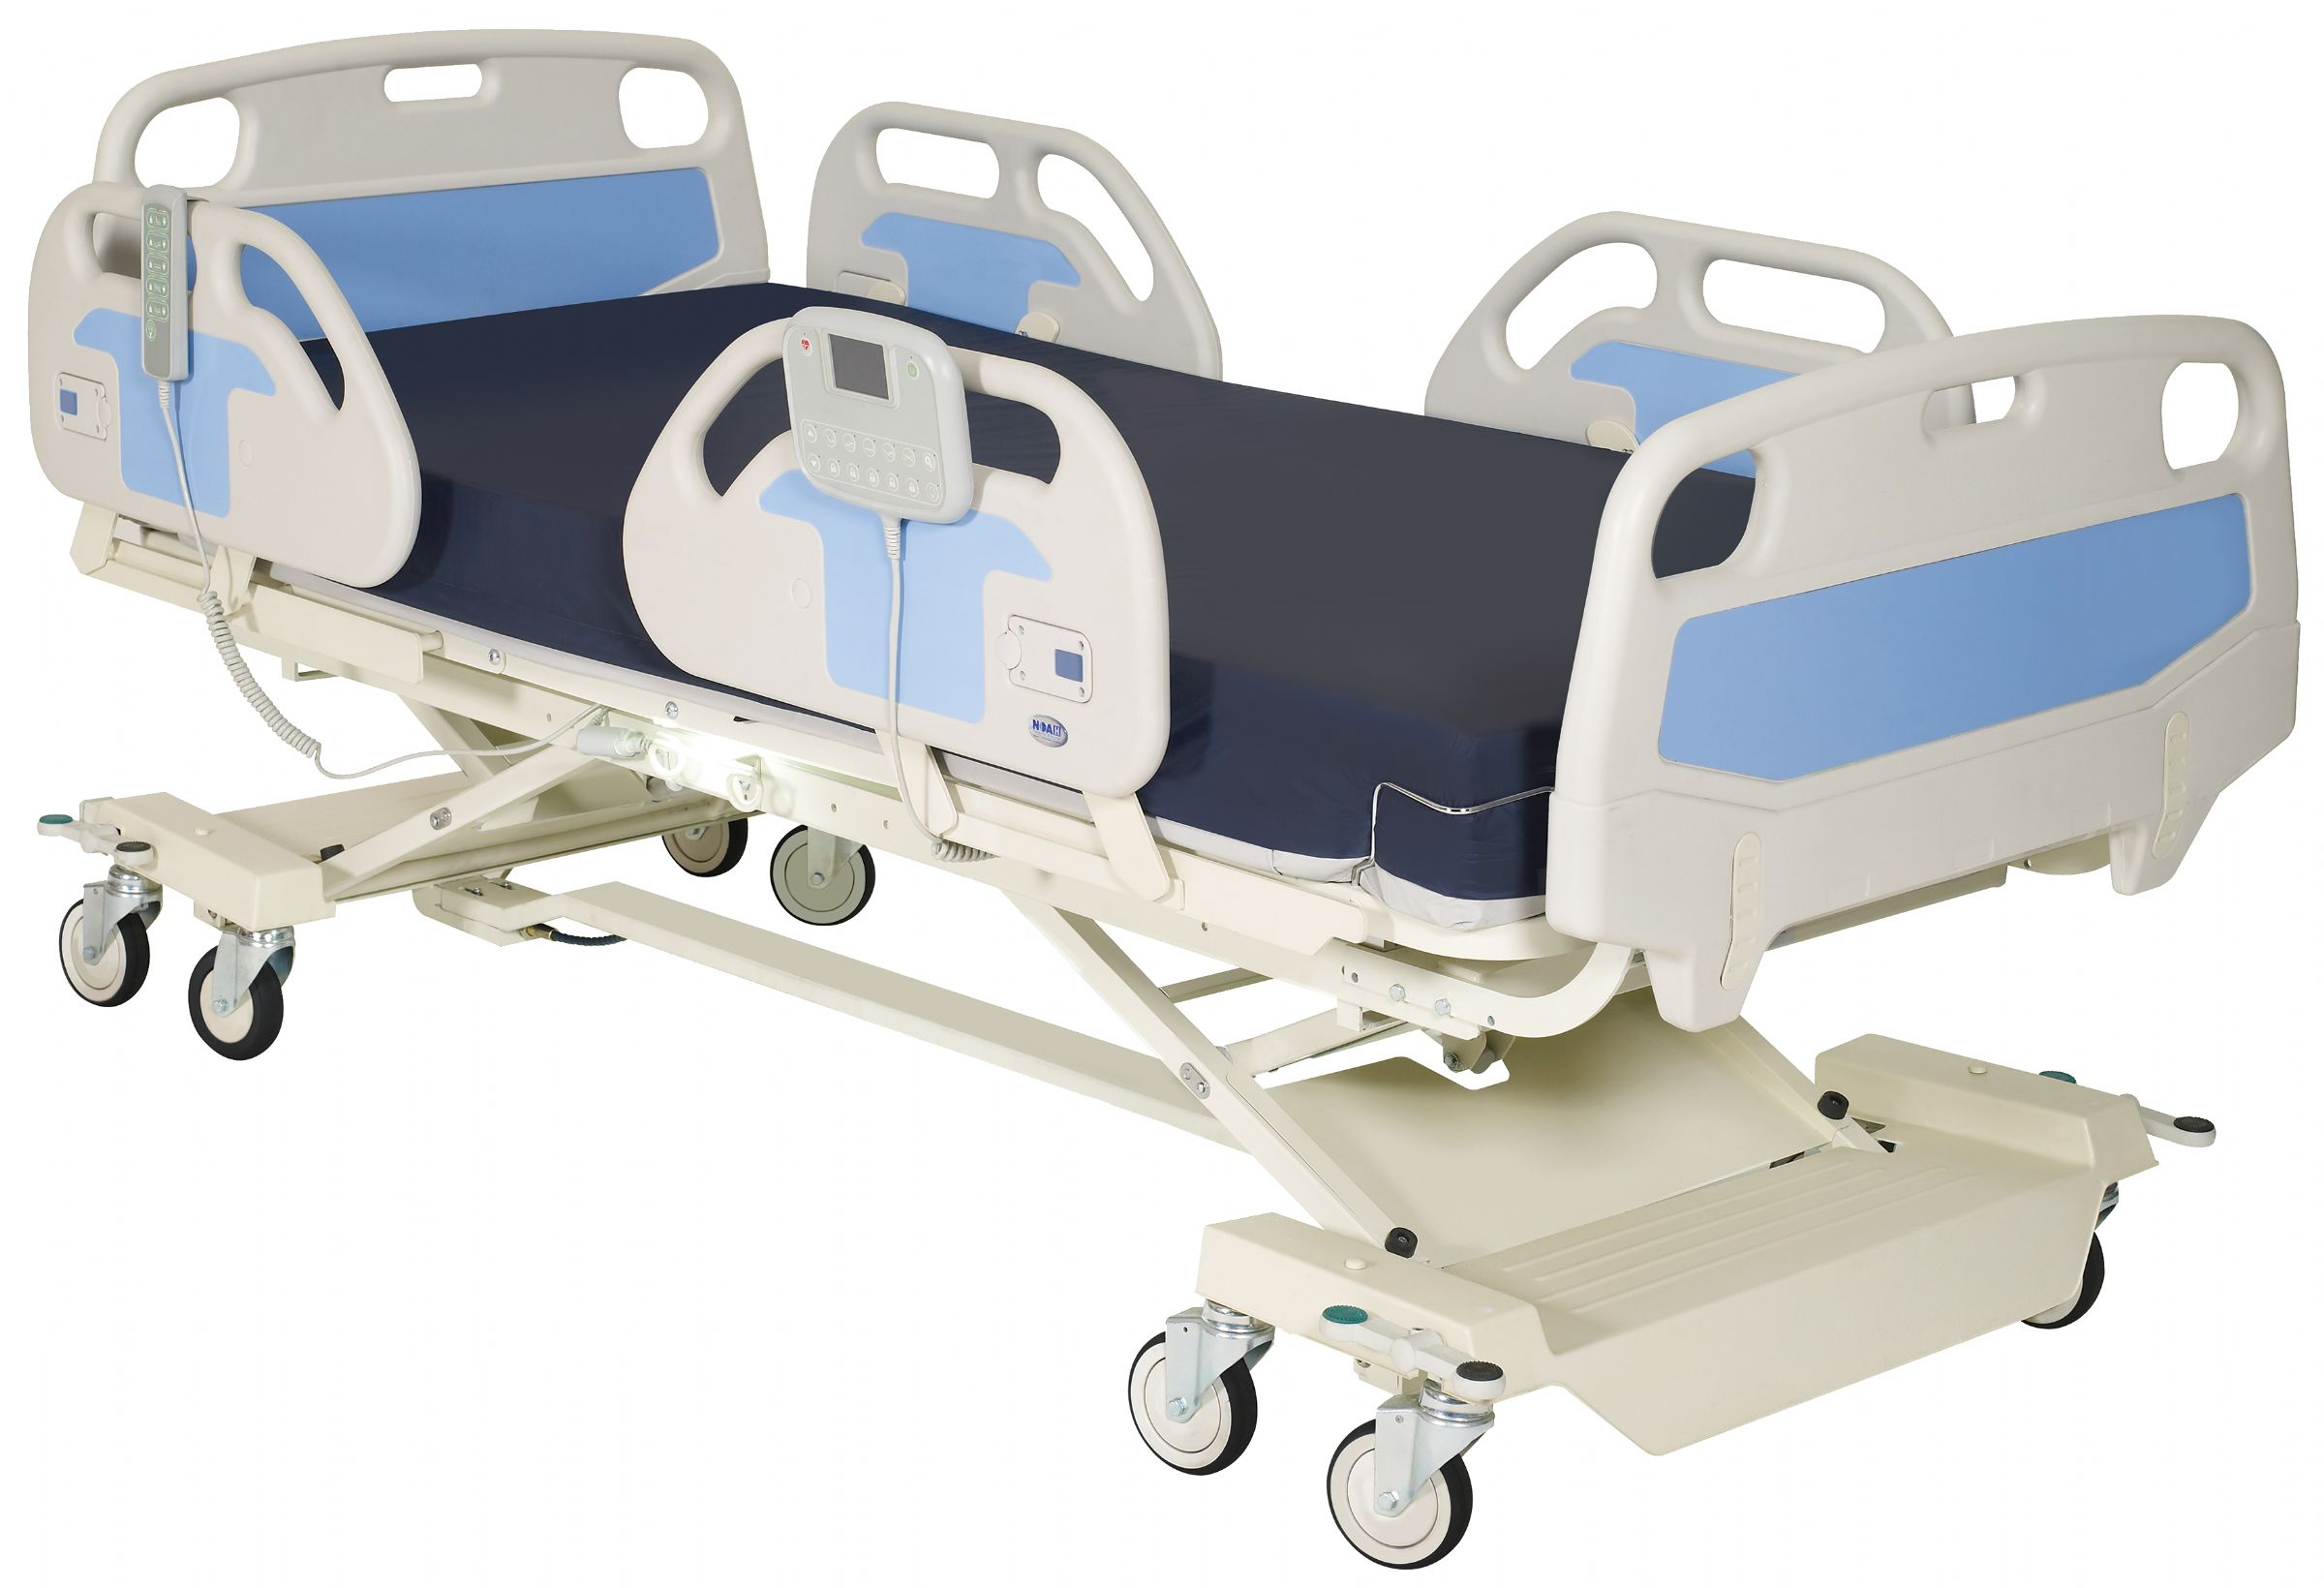 Noa Hospital Platinum Ns Bed Package For Home Or Hospital Use